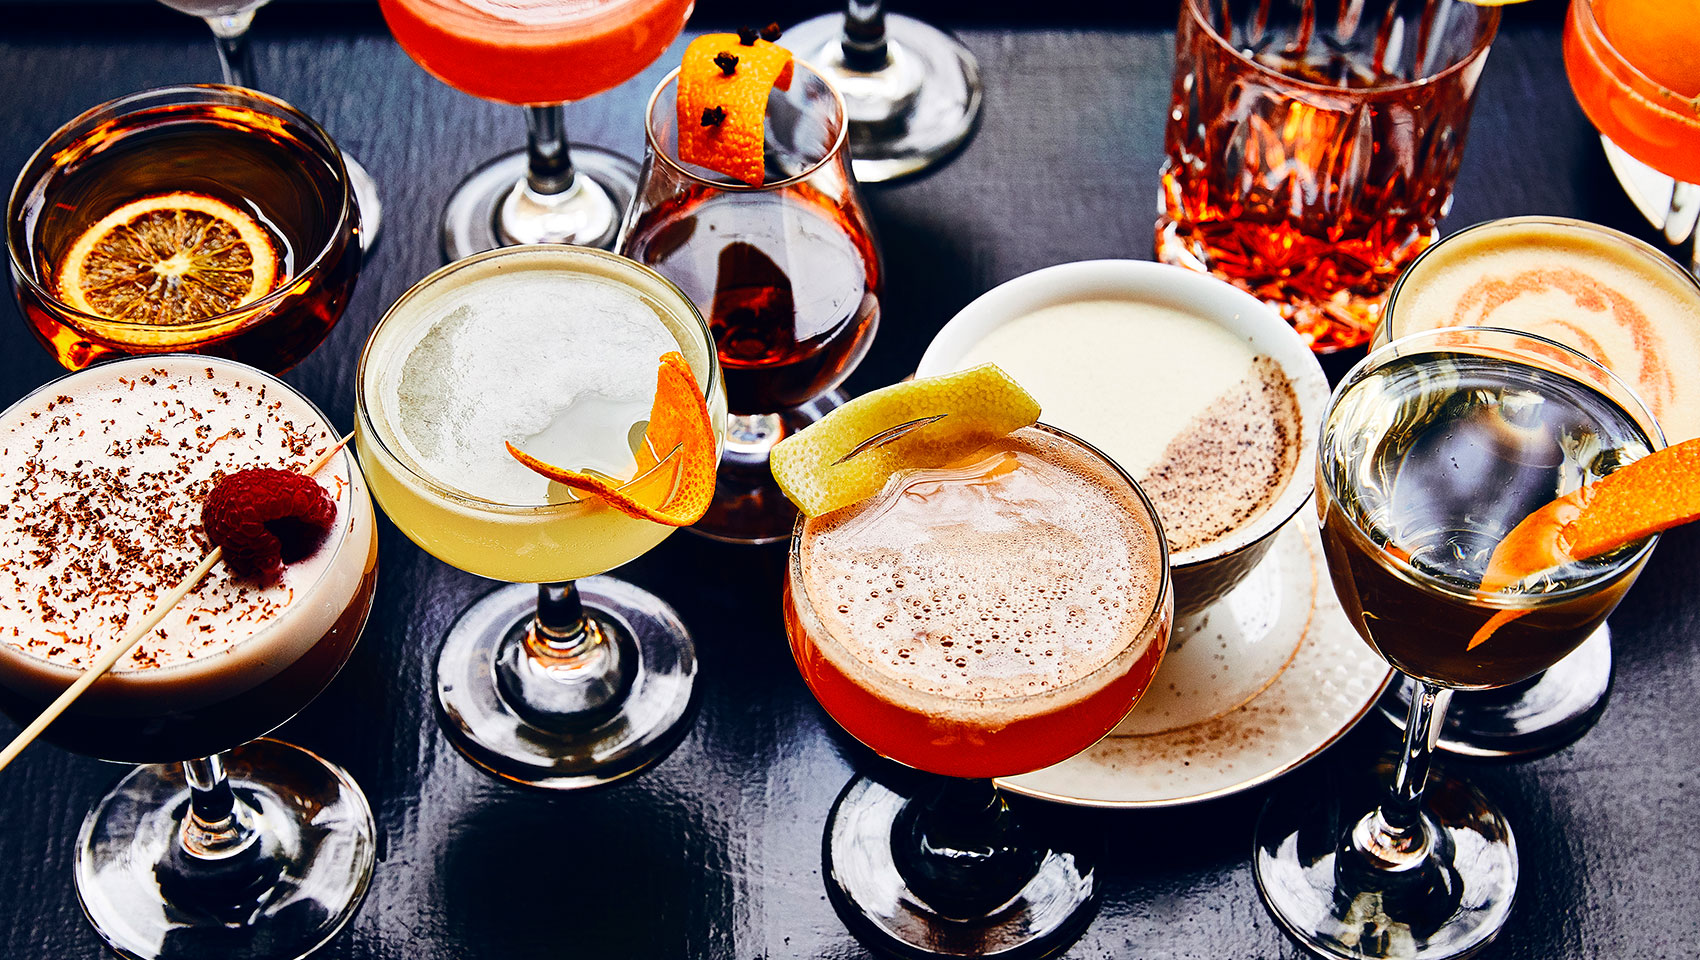 Delicious assortment of craft cocktails from old fashions to espresso martinis